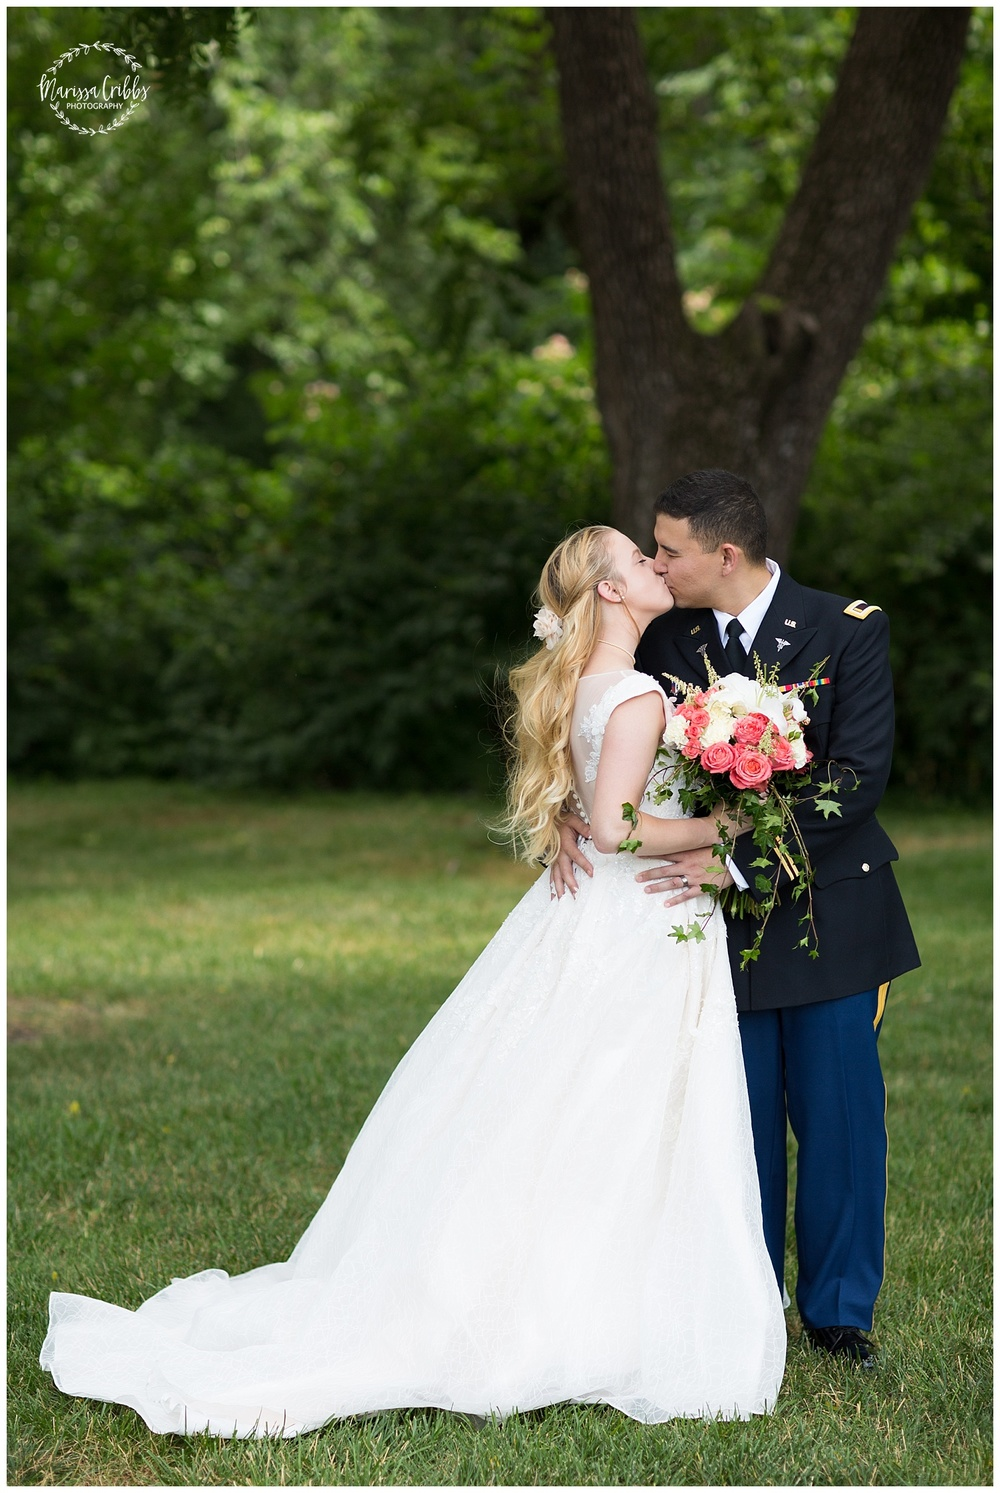 Jimenez Wedding | Marissa Cribbs Photography_0290.jpg